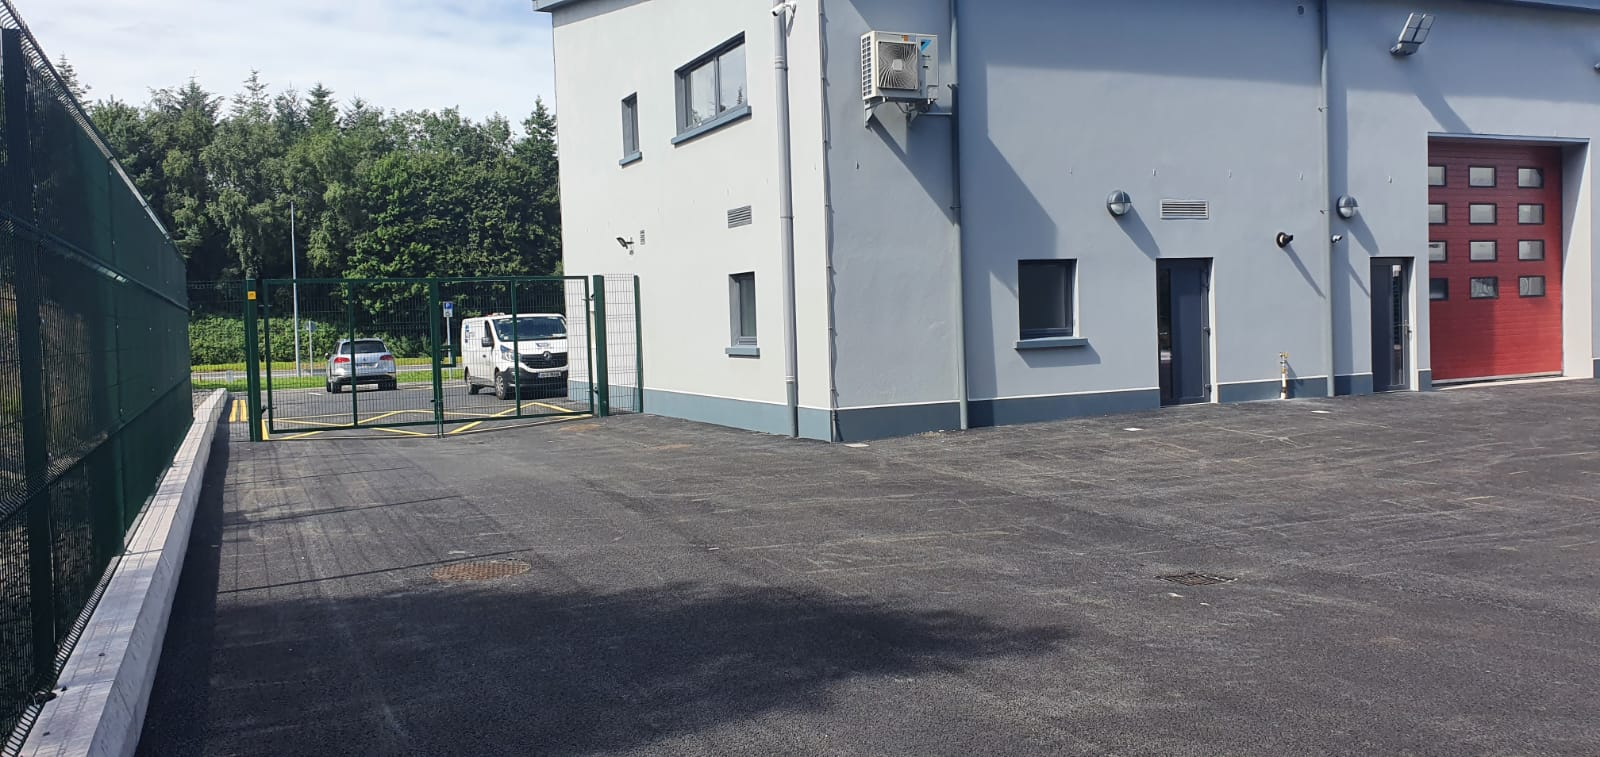 Meeganbuilders castleblayney fire station